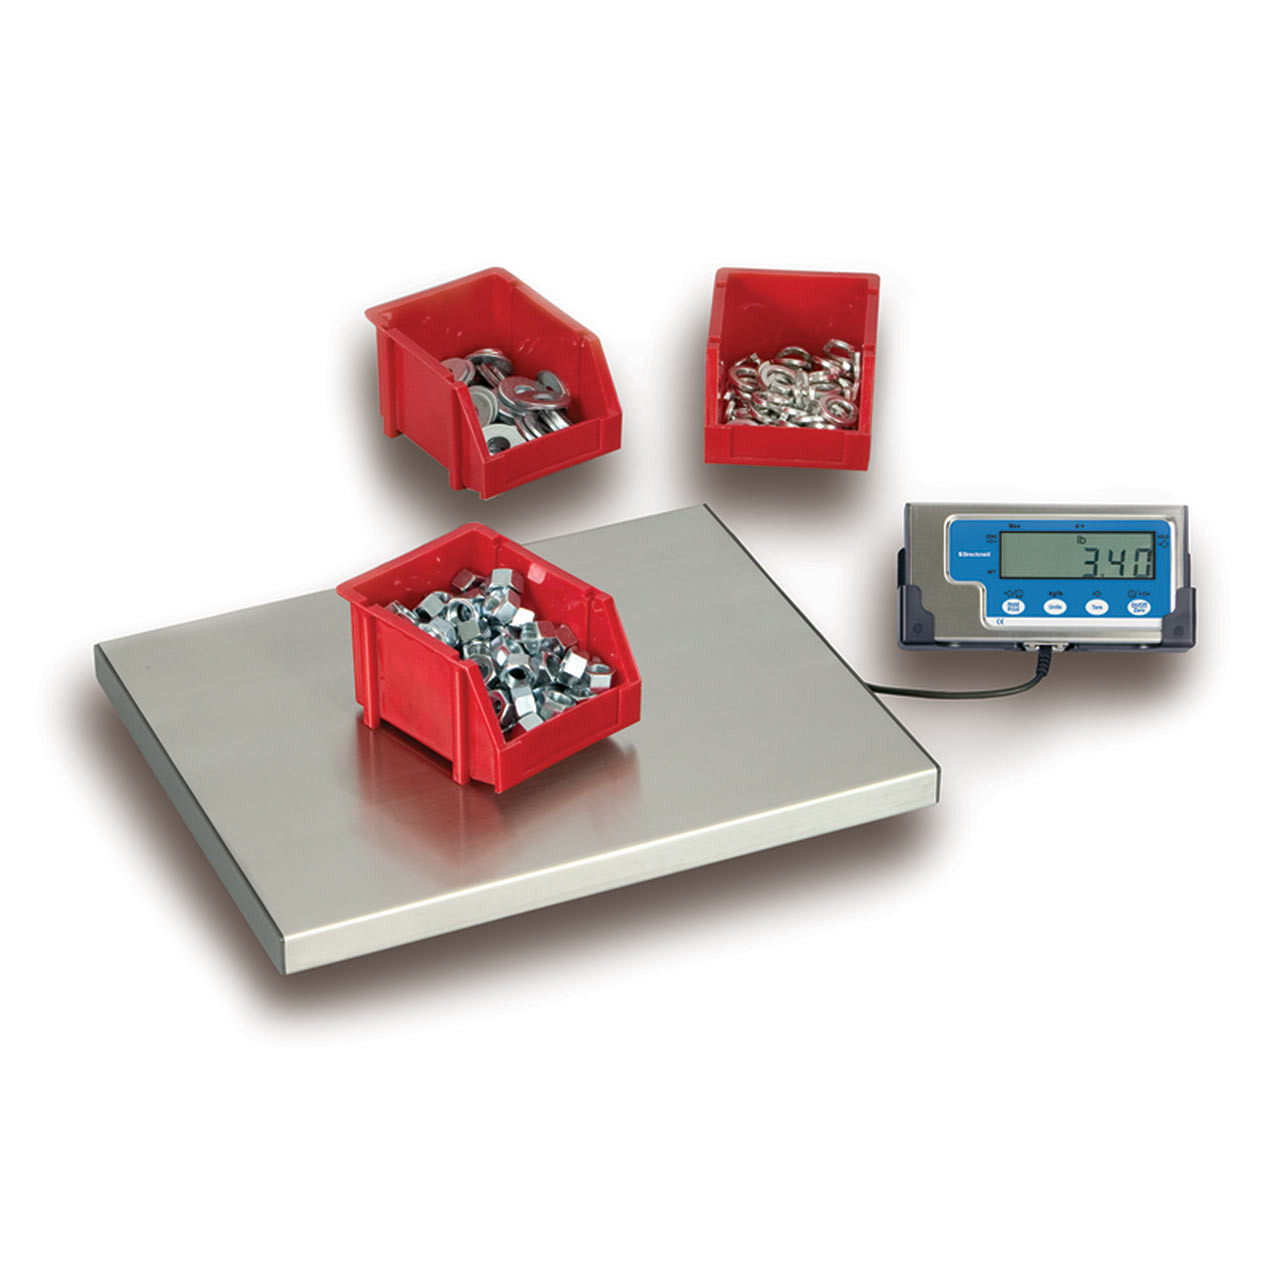 Stainless Steel Platform Bench Scale Weighing Containers